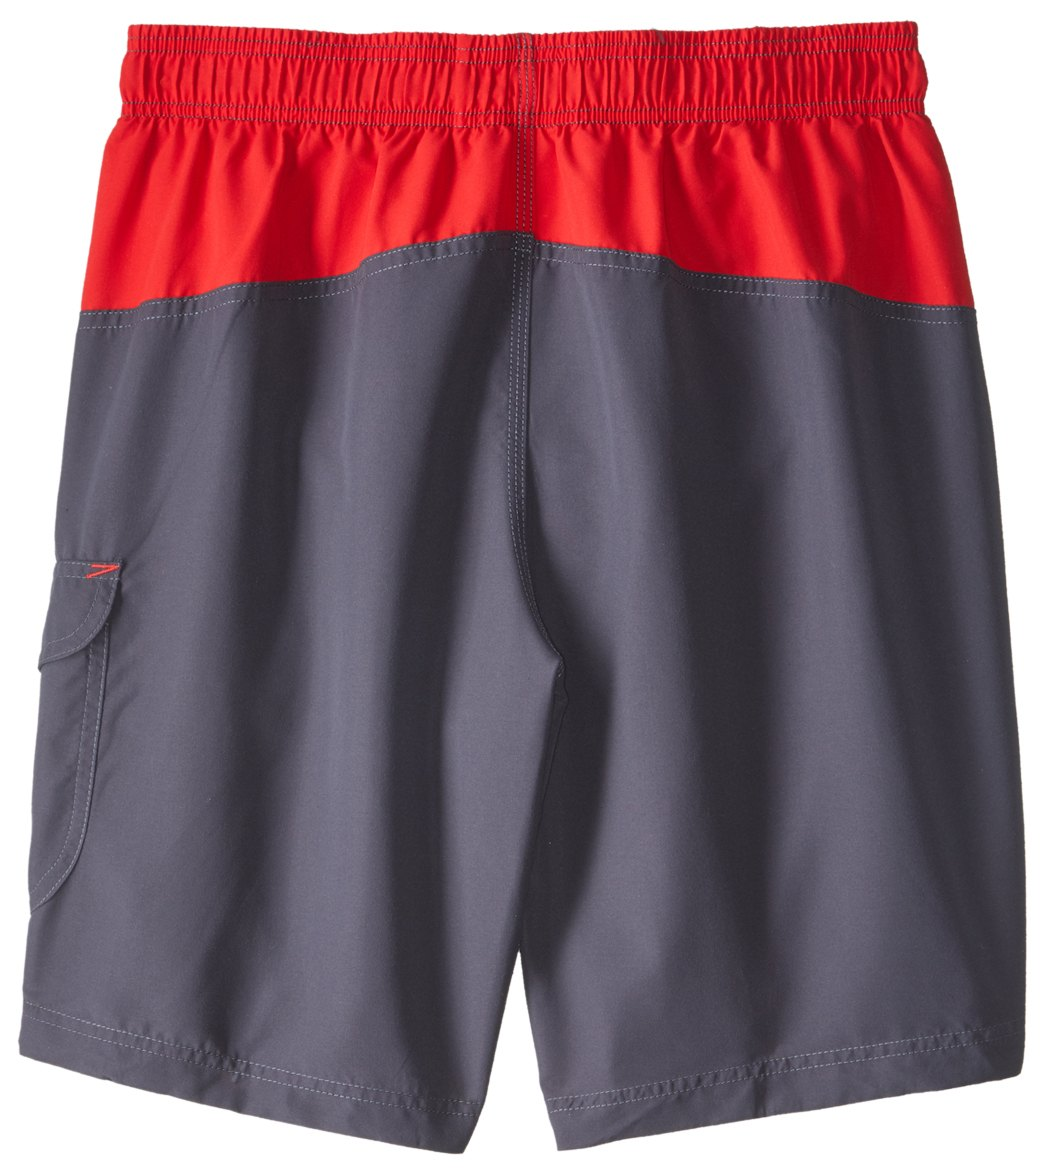 d8e58d5203 Speedo Men's 20'' Marina Sport Volley Water Short at SwimOutlet.com